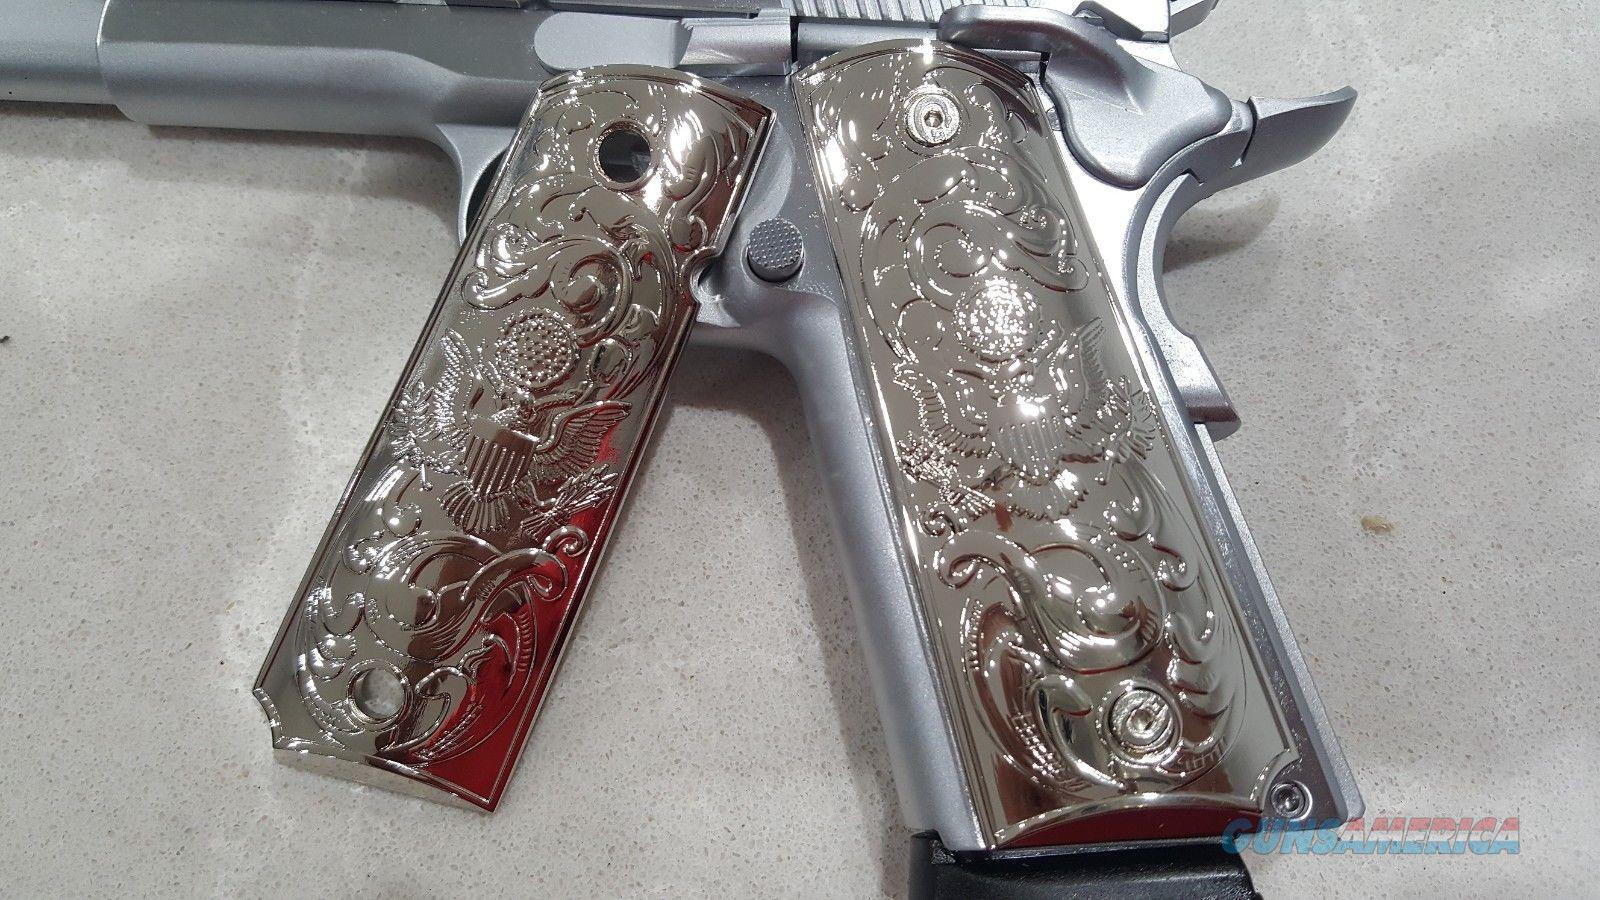 Luxury FOR 1911 Grips COLT GRIPS Full Size Nickel Plated W Matching Screws  Non-Guns > Gun Parts > 1911